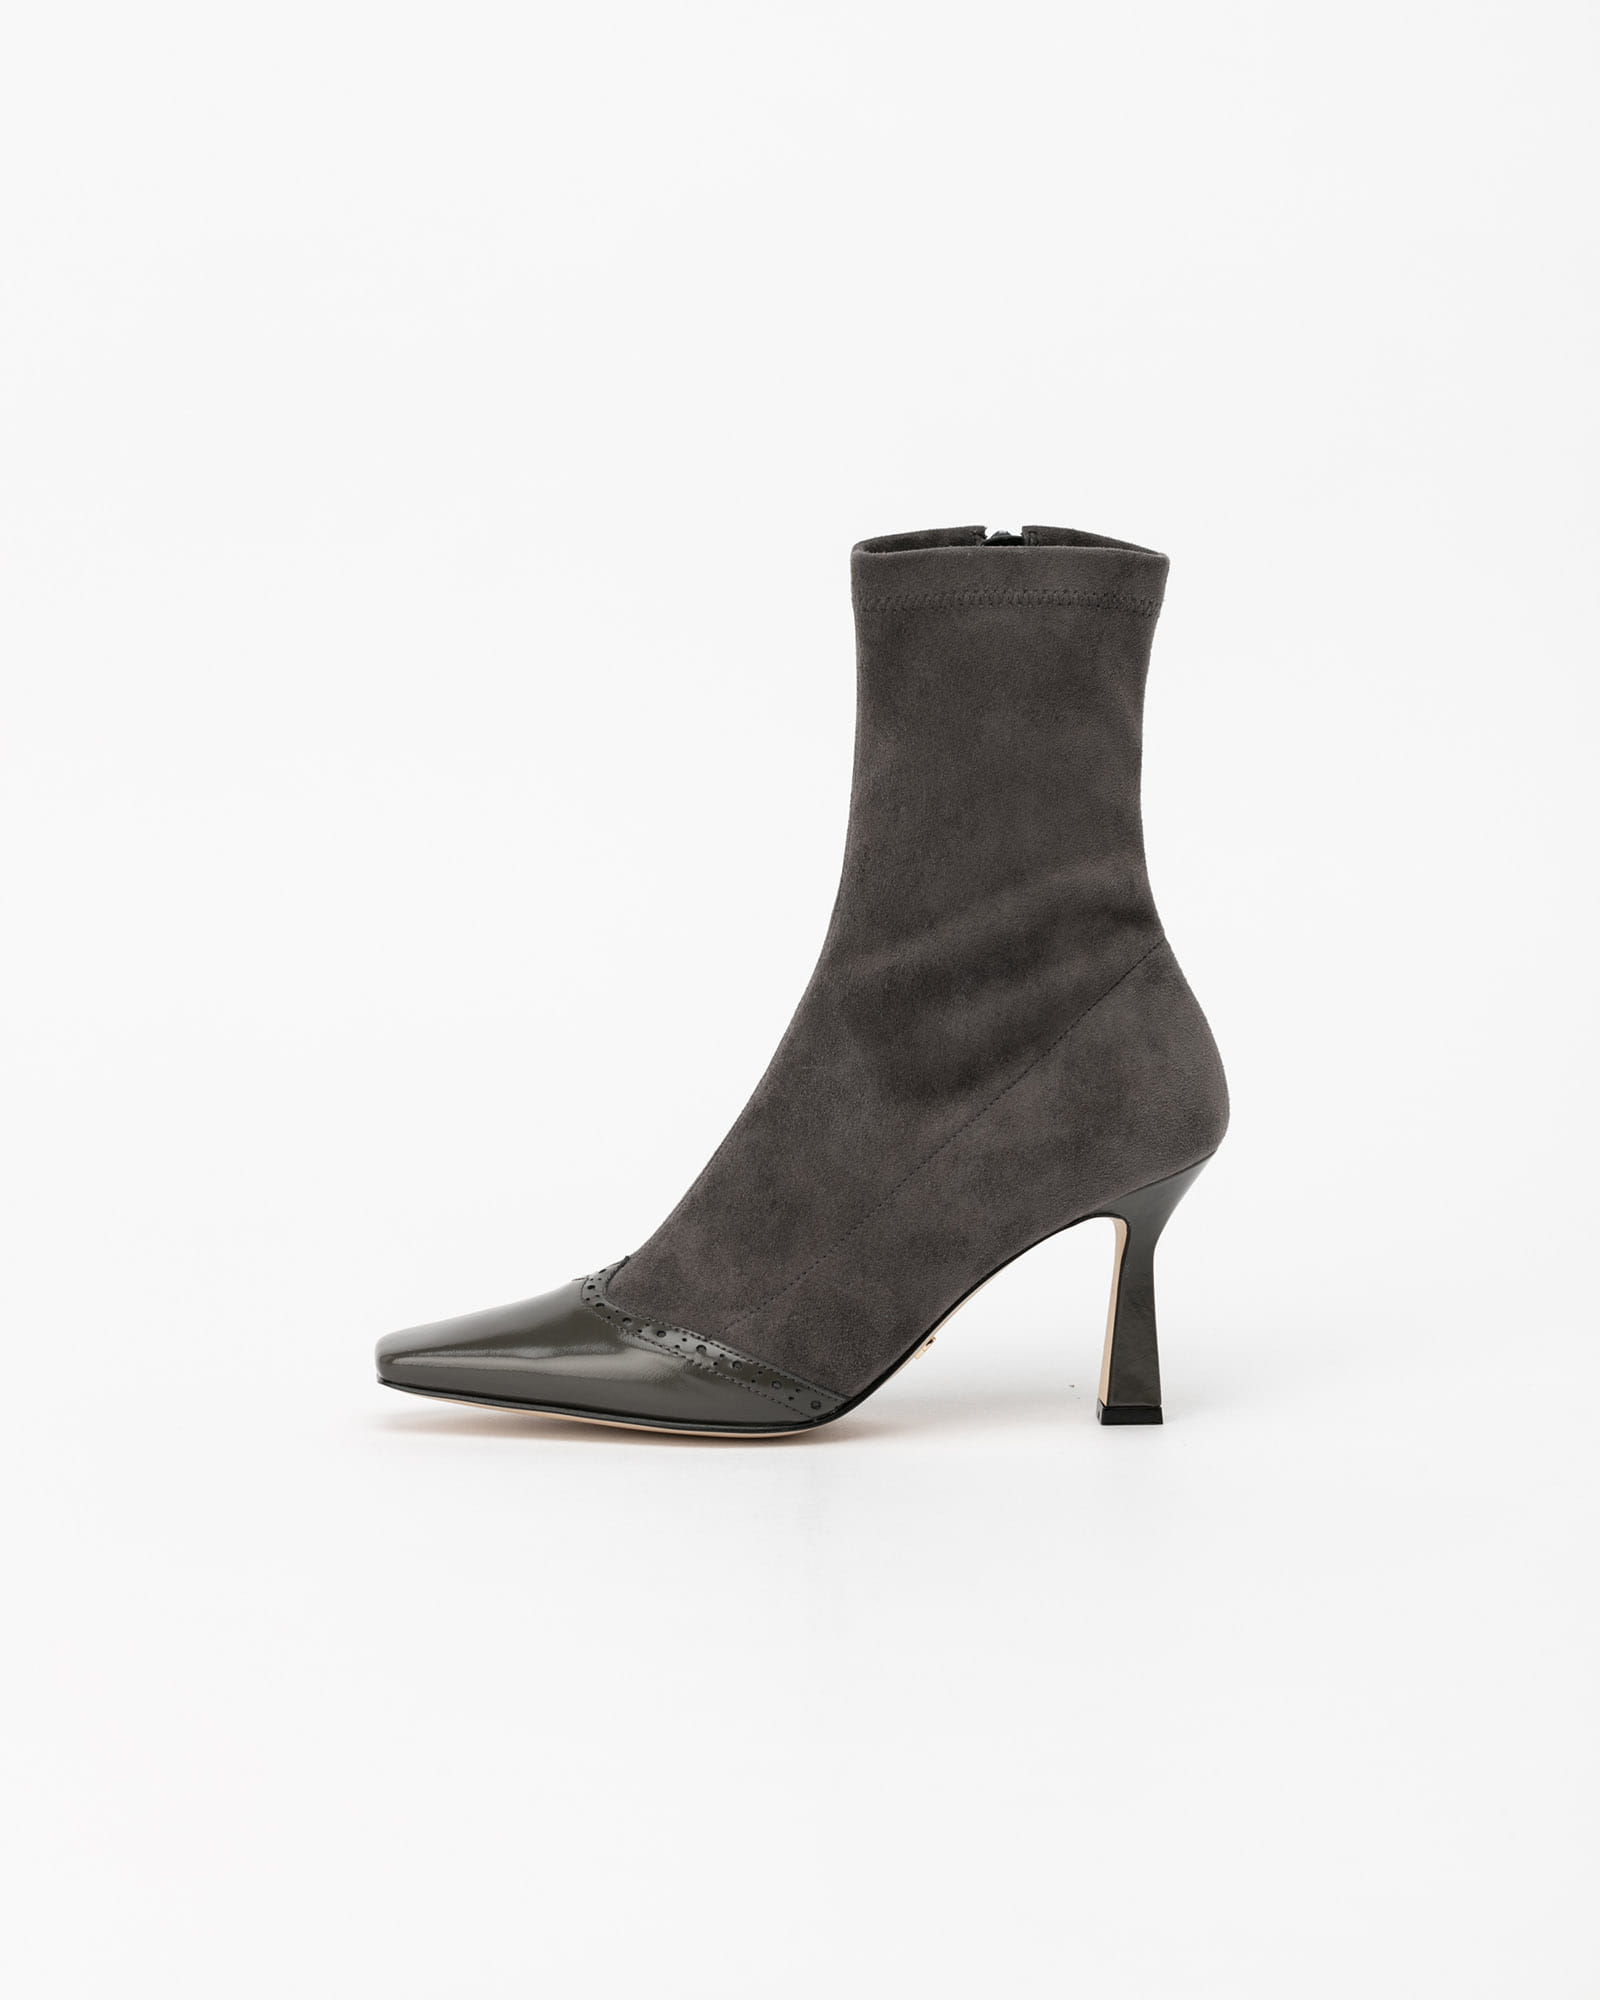 Feroni Spandex Leather Boots in Gray